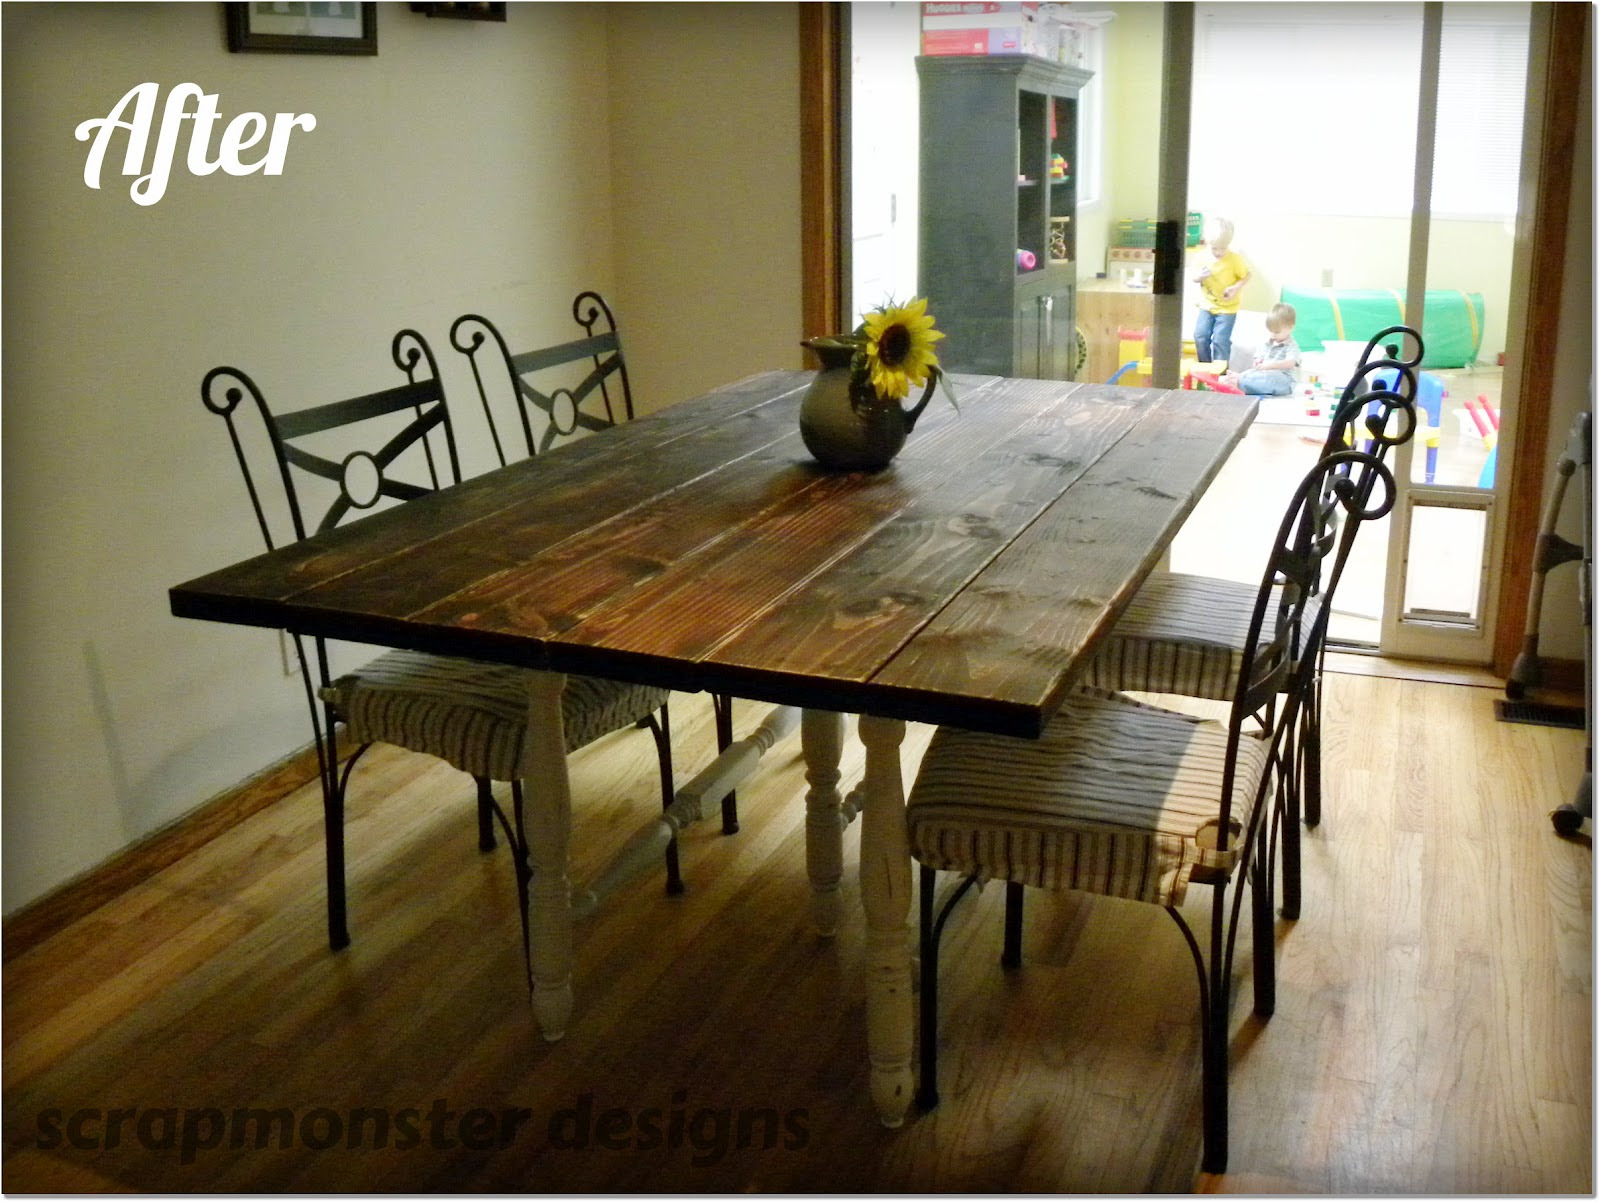 Build A Rustic Dining Table Large And Beautiful Photos Photo To Select Build A Rustic Dining Table Design Your Home